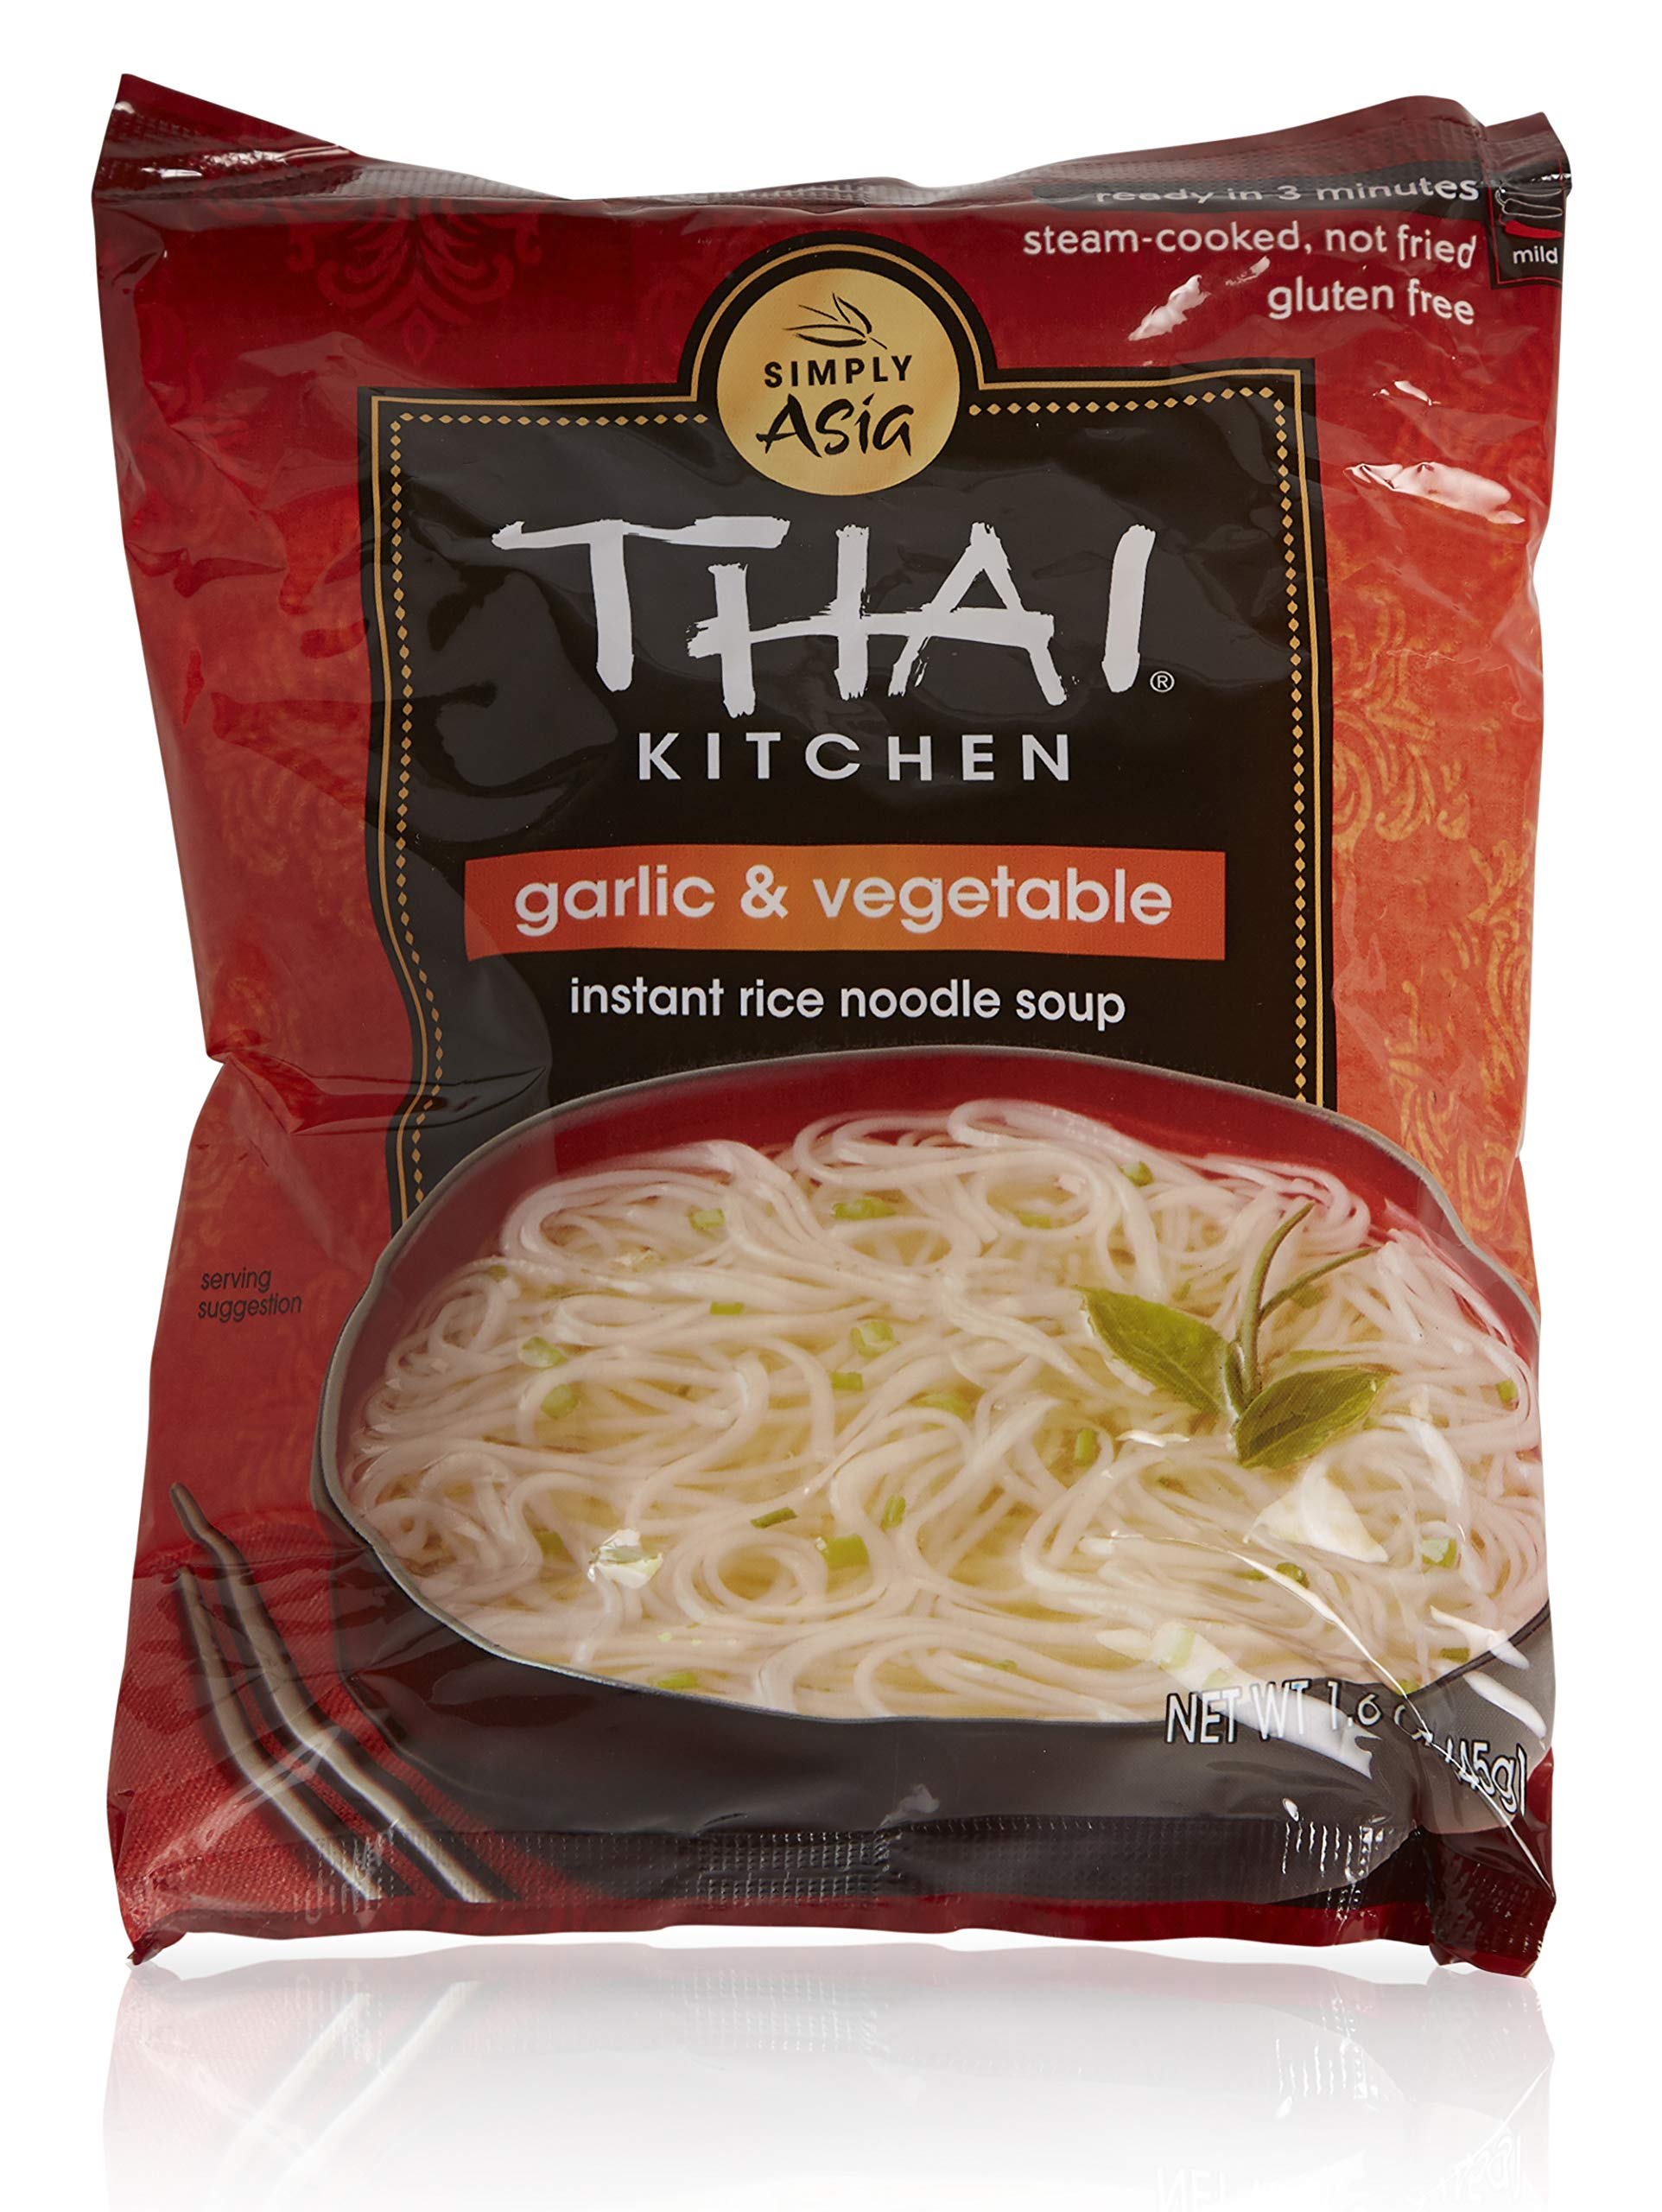 Thai Kitchen Instant Rice Noodle Soup, Garlic and Vegetables, 1.6-Ounce Unit (Pack of 12) by Thai Kitchen